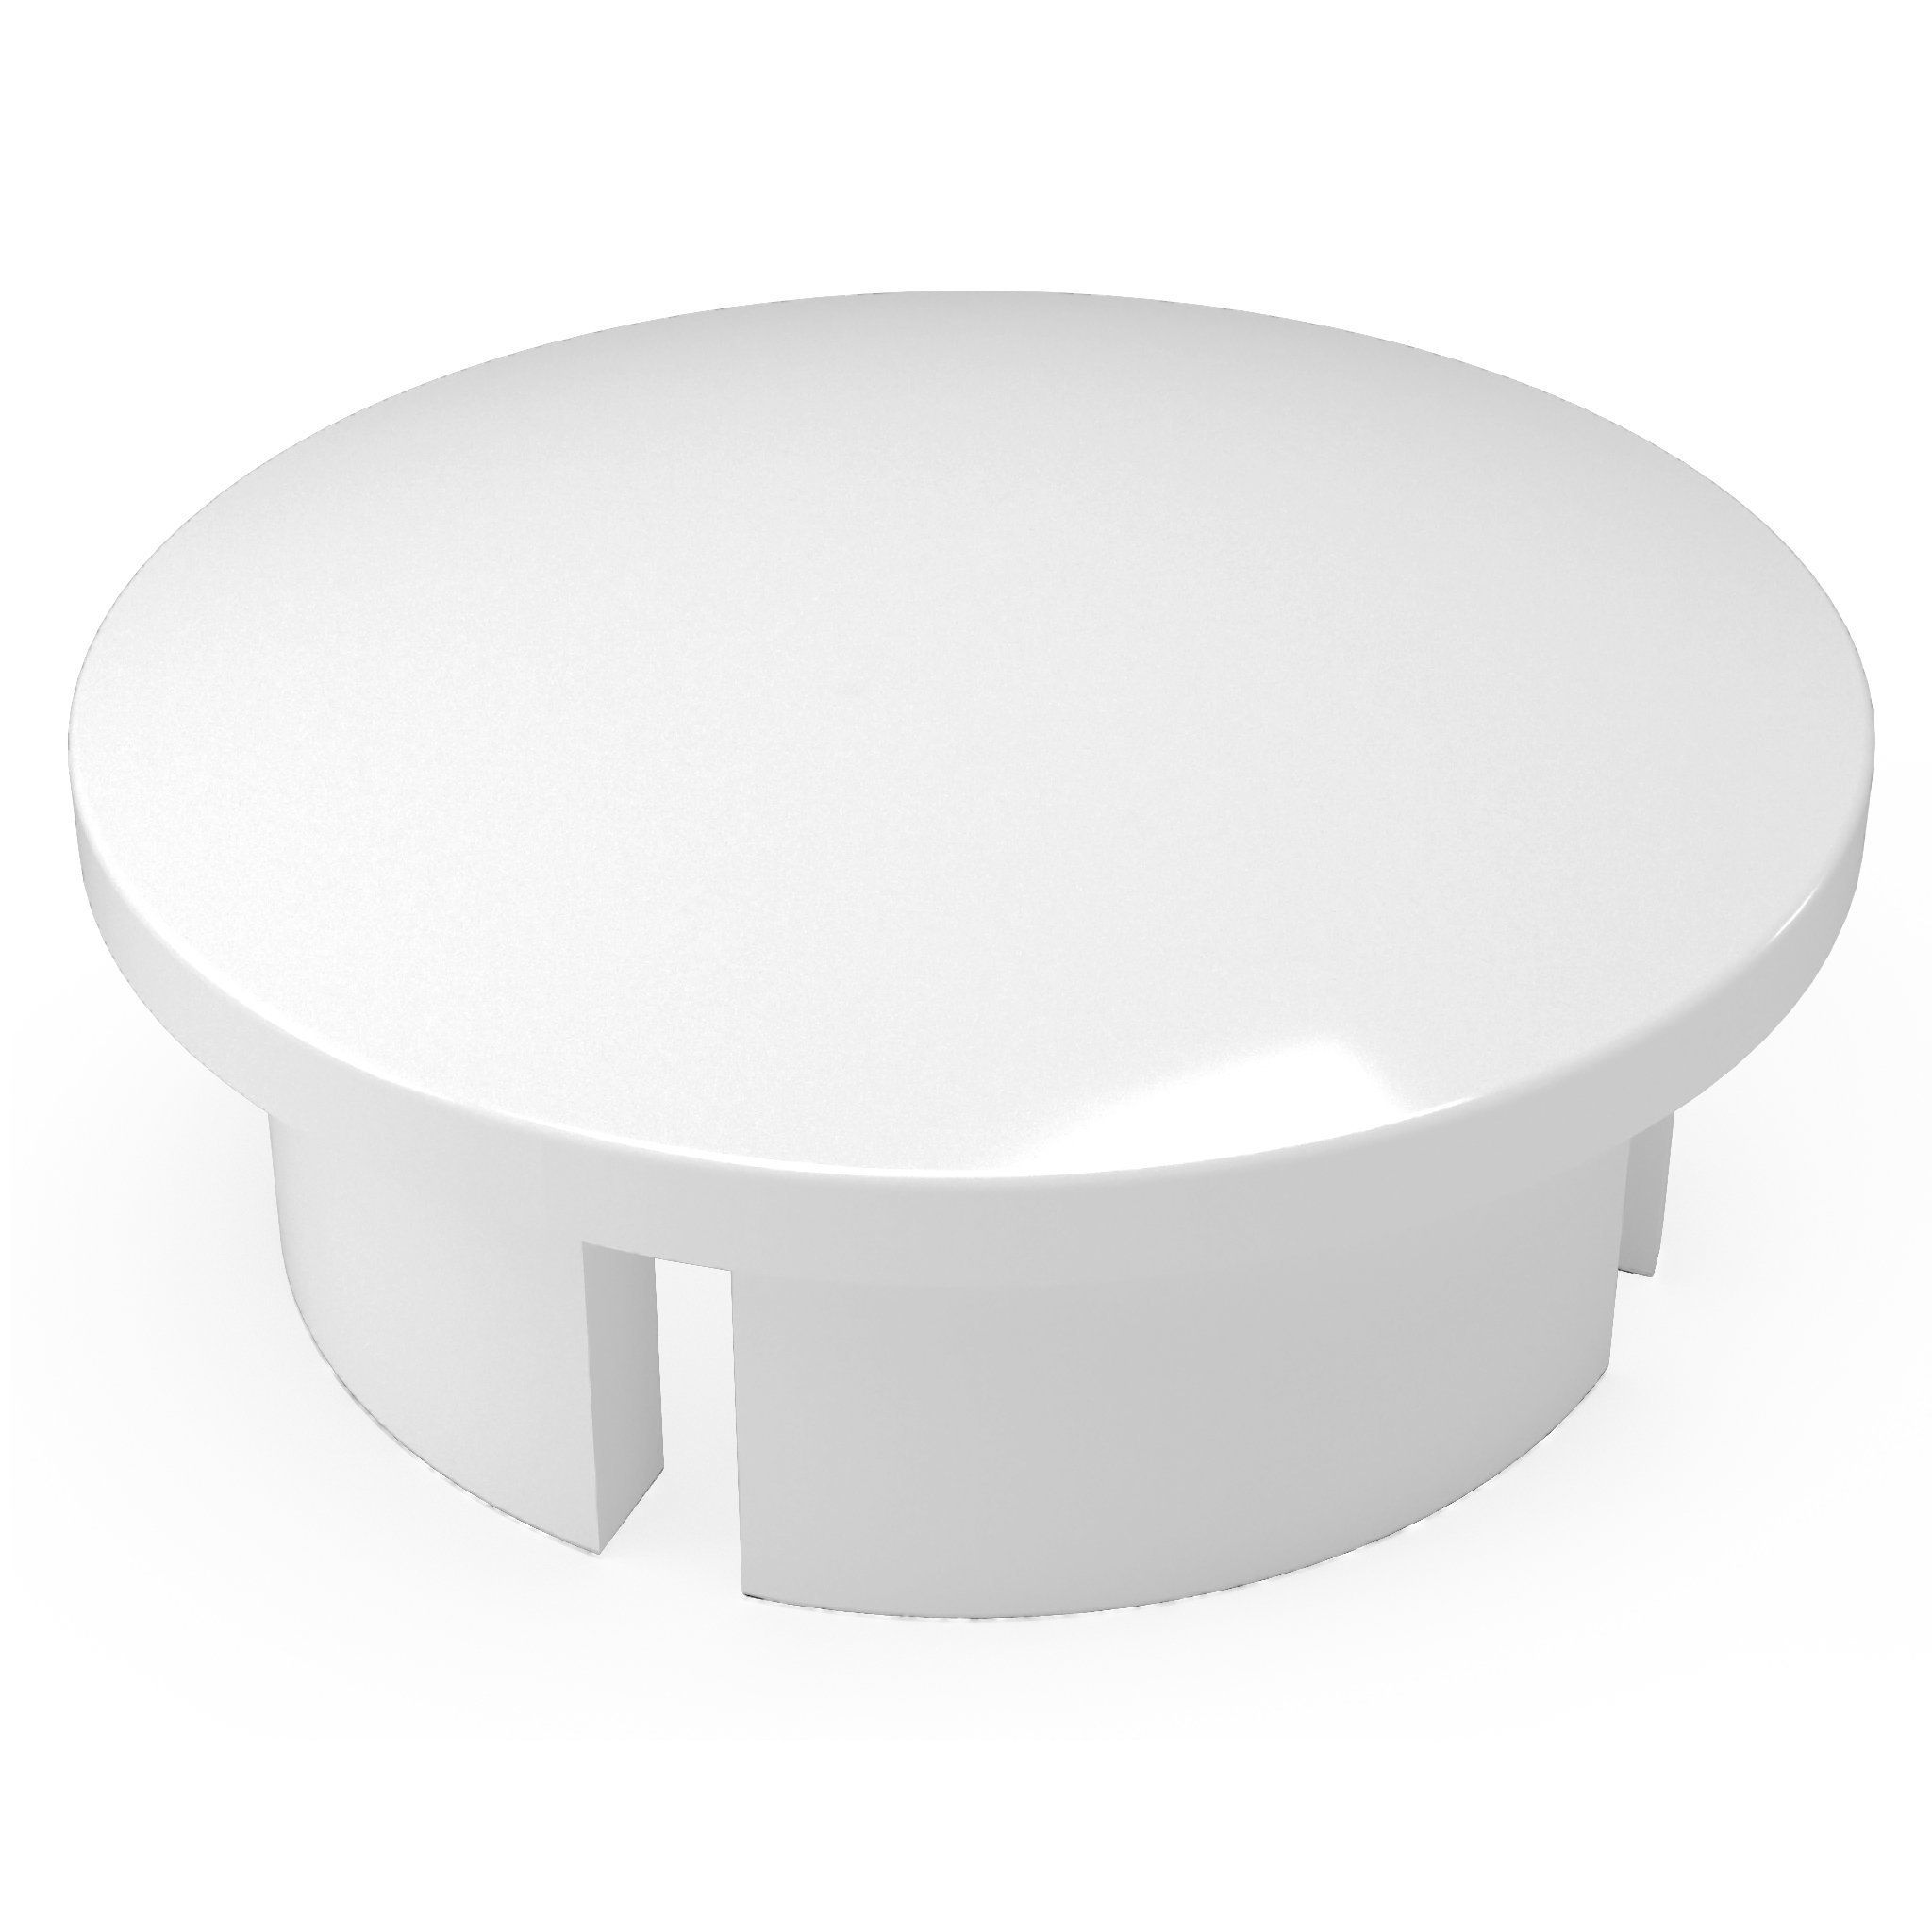 1 1 4 Internal Pvc Dome Cap Furniture Grade Furniture Grade Pvc Bathroom Plumbing Pvc Projects